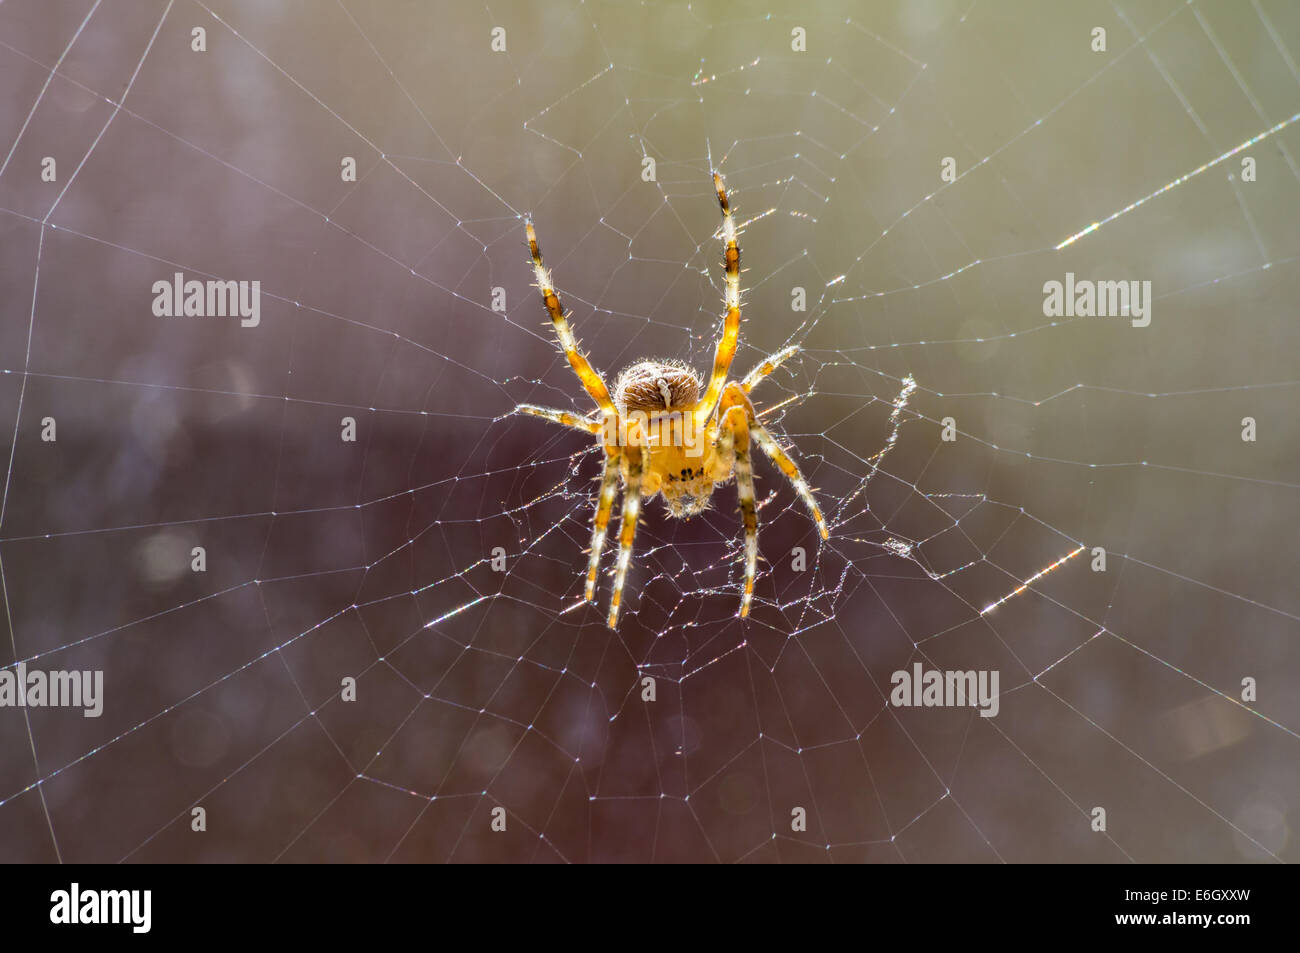 Araneus diadematus. Common UK spider waiting in its web back lit by the sun - Stock Image